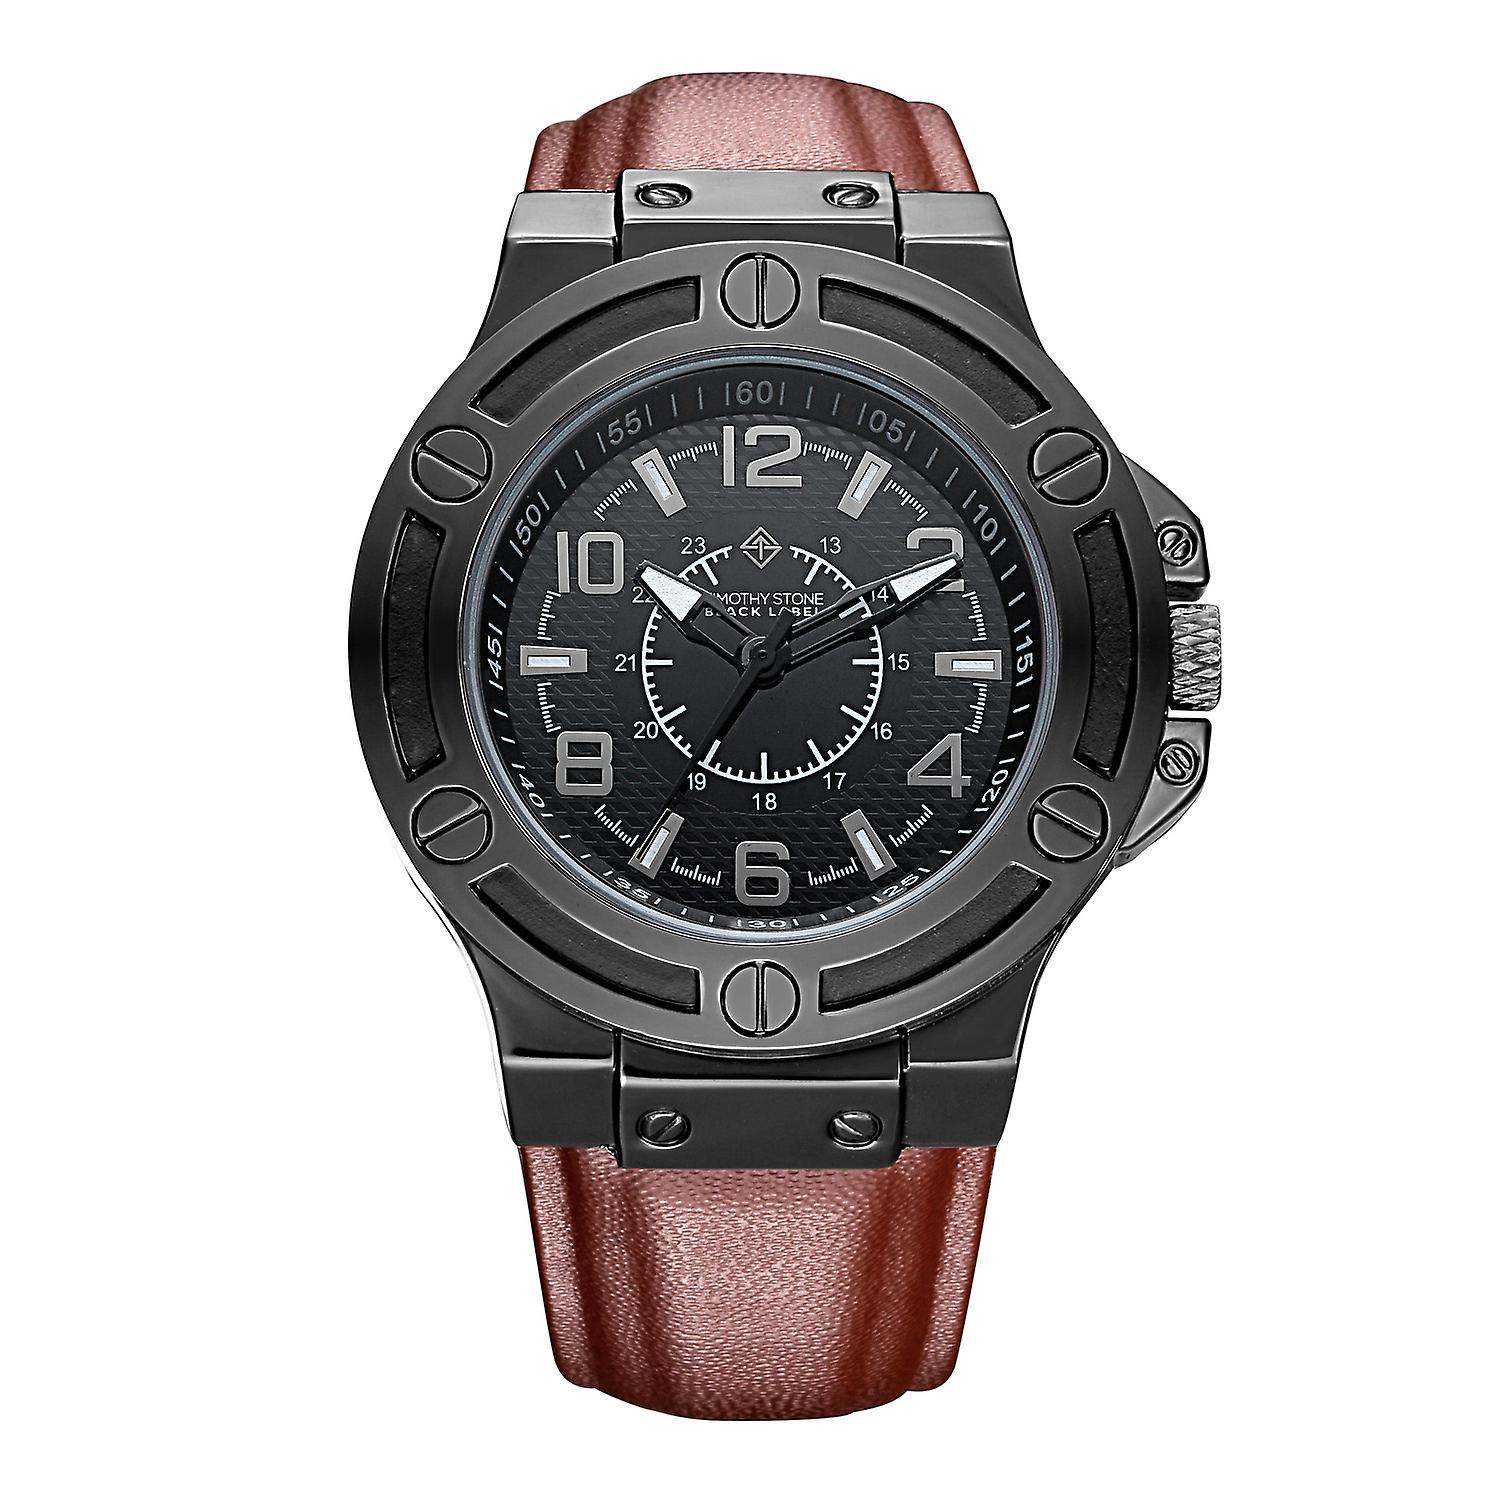 Timothy Stone Men's MANIS Black Watch and Brown Leather Strap